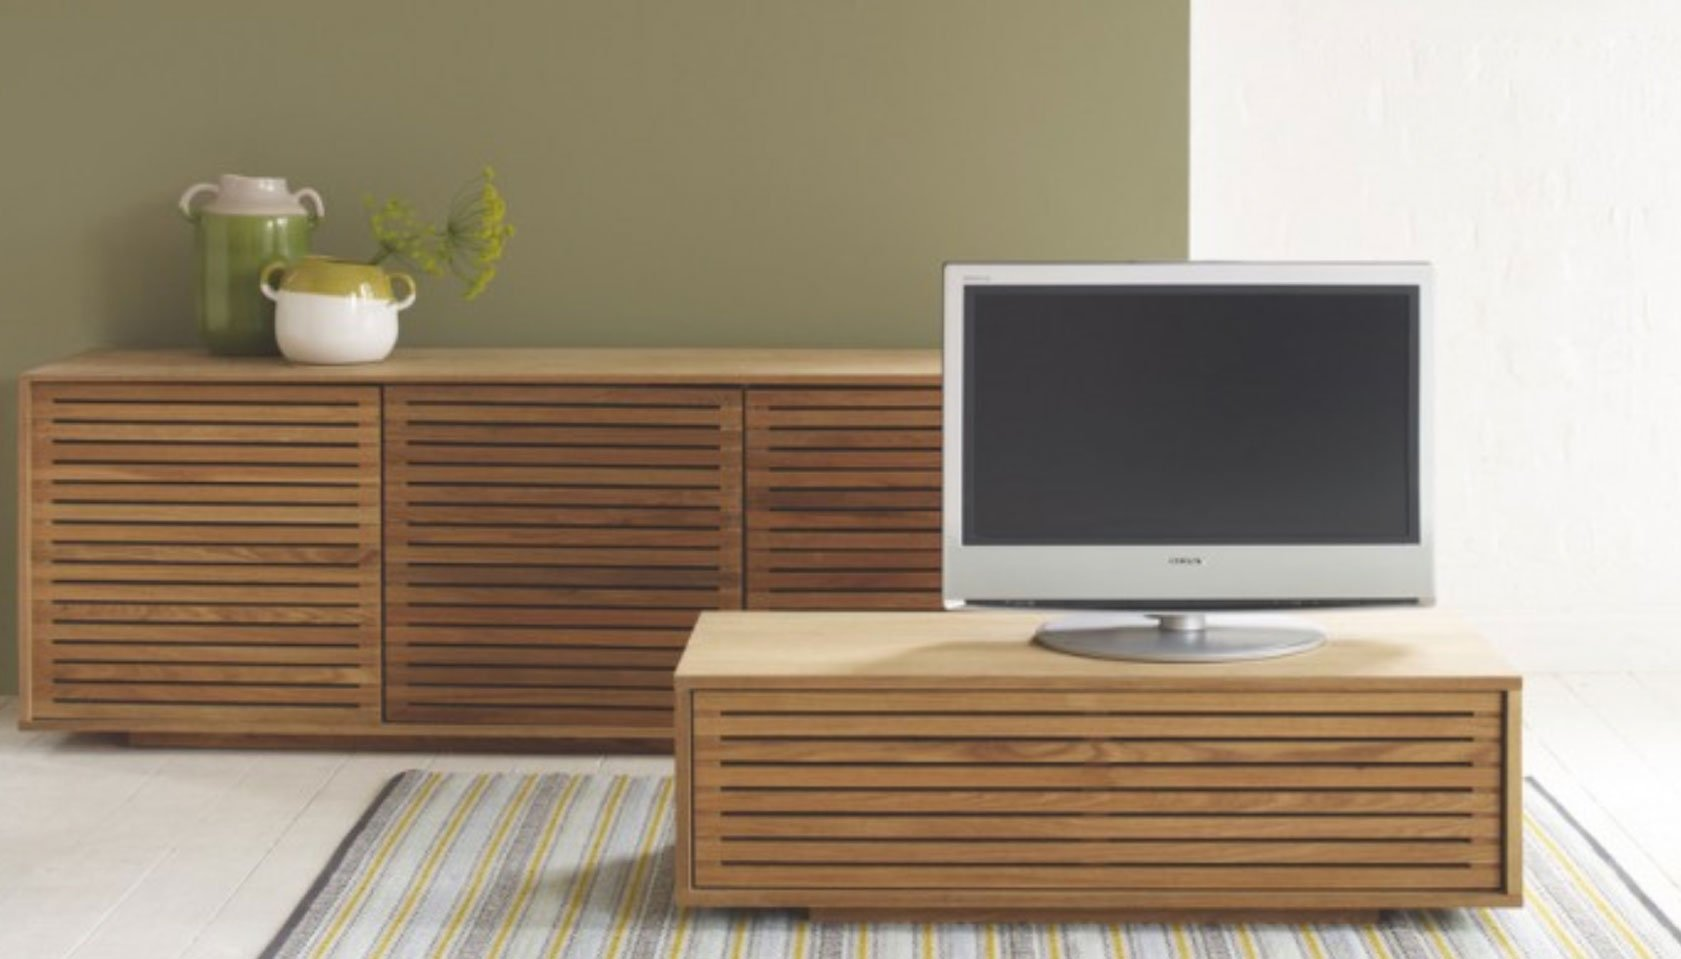 6 Reasons To Go With Wooden Corner TV Stands For Flat Screens